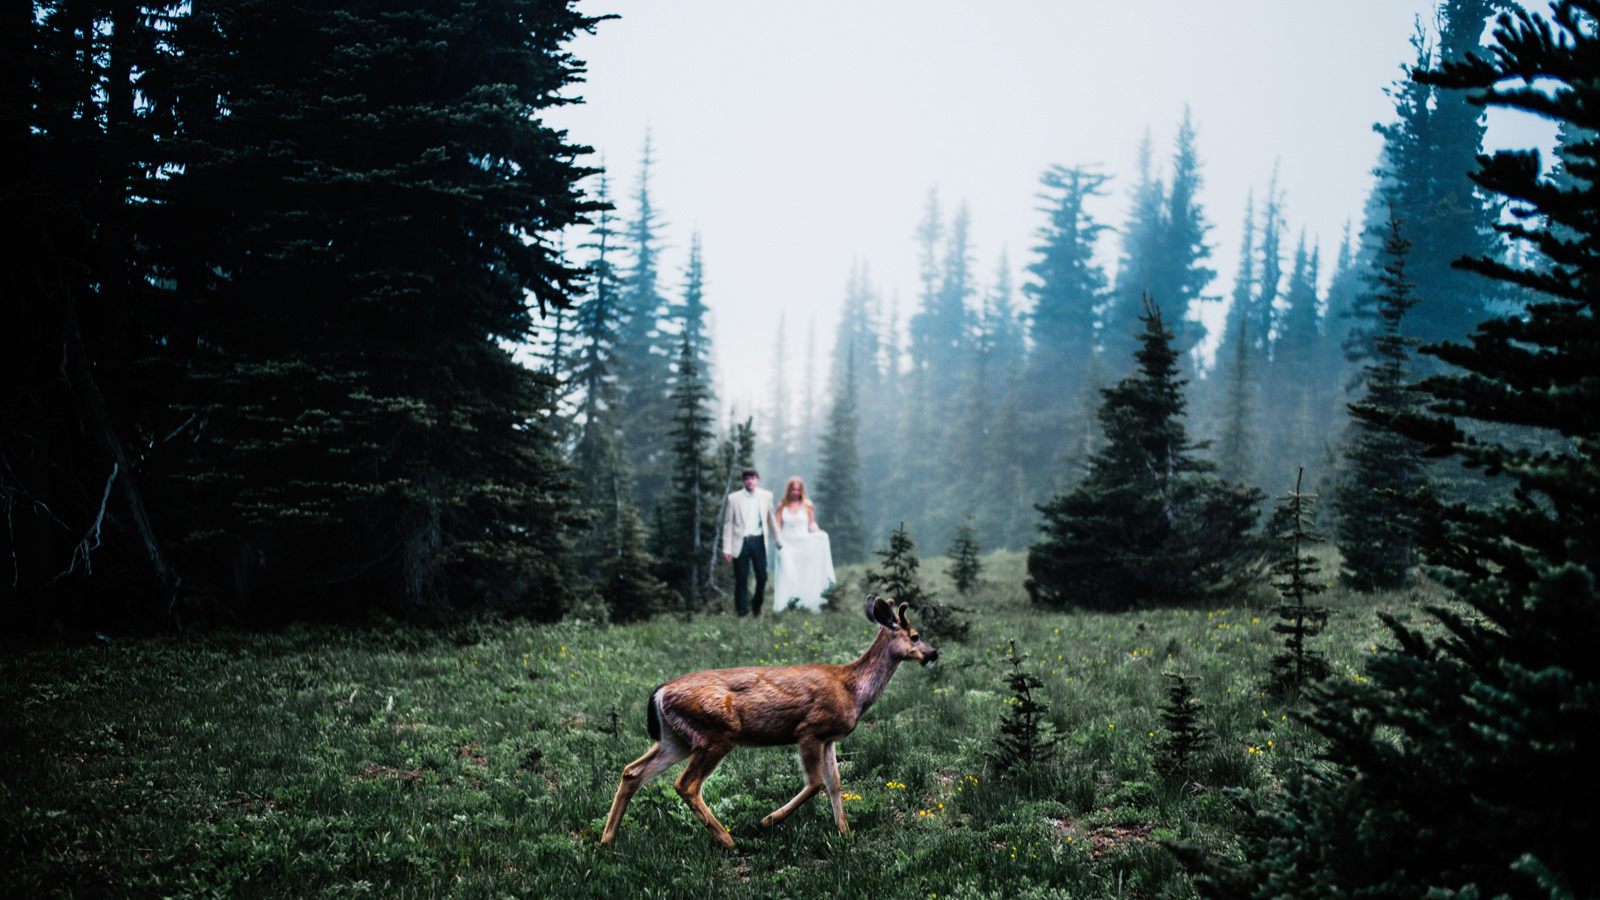 004-epic-foggy-wedding-photo-with-deer-at-mt-rainier-national-park-by-ryan-flynn.jpg